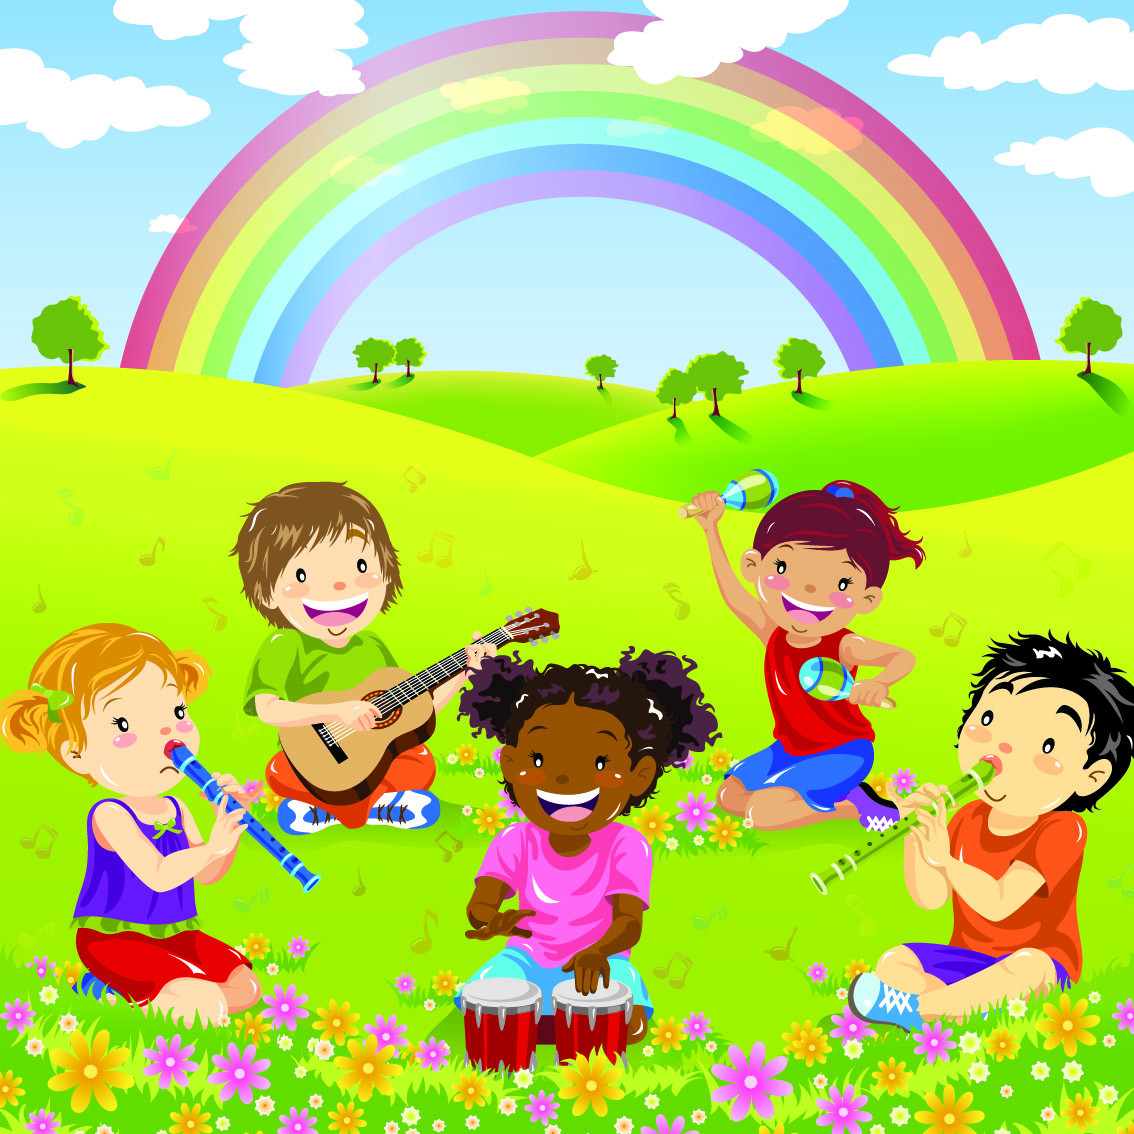 A cartoon image of children playing musical instruments on a grass field with a rainbow in the back